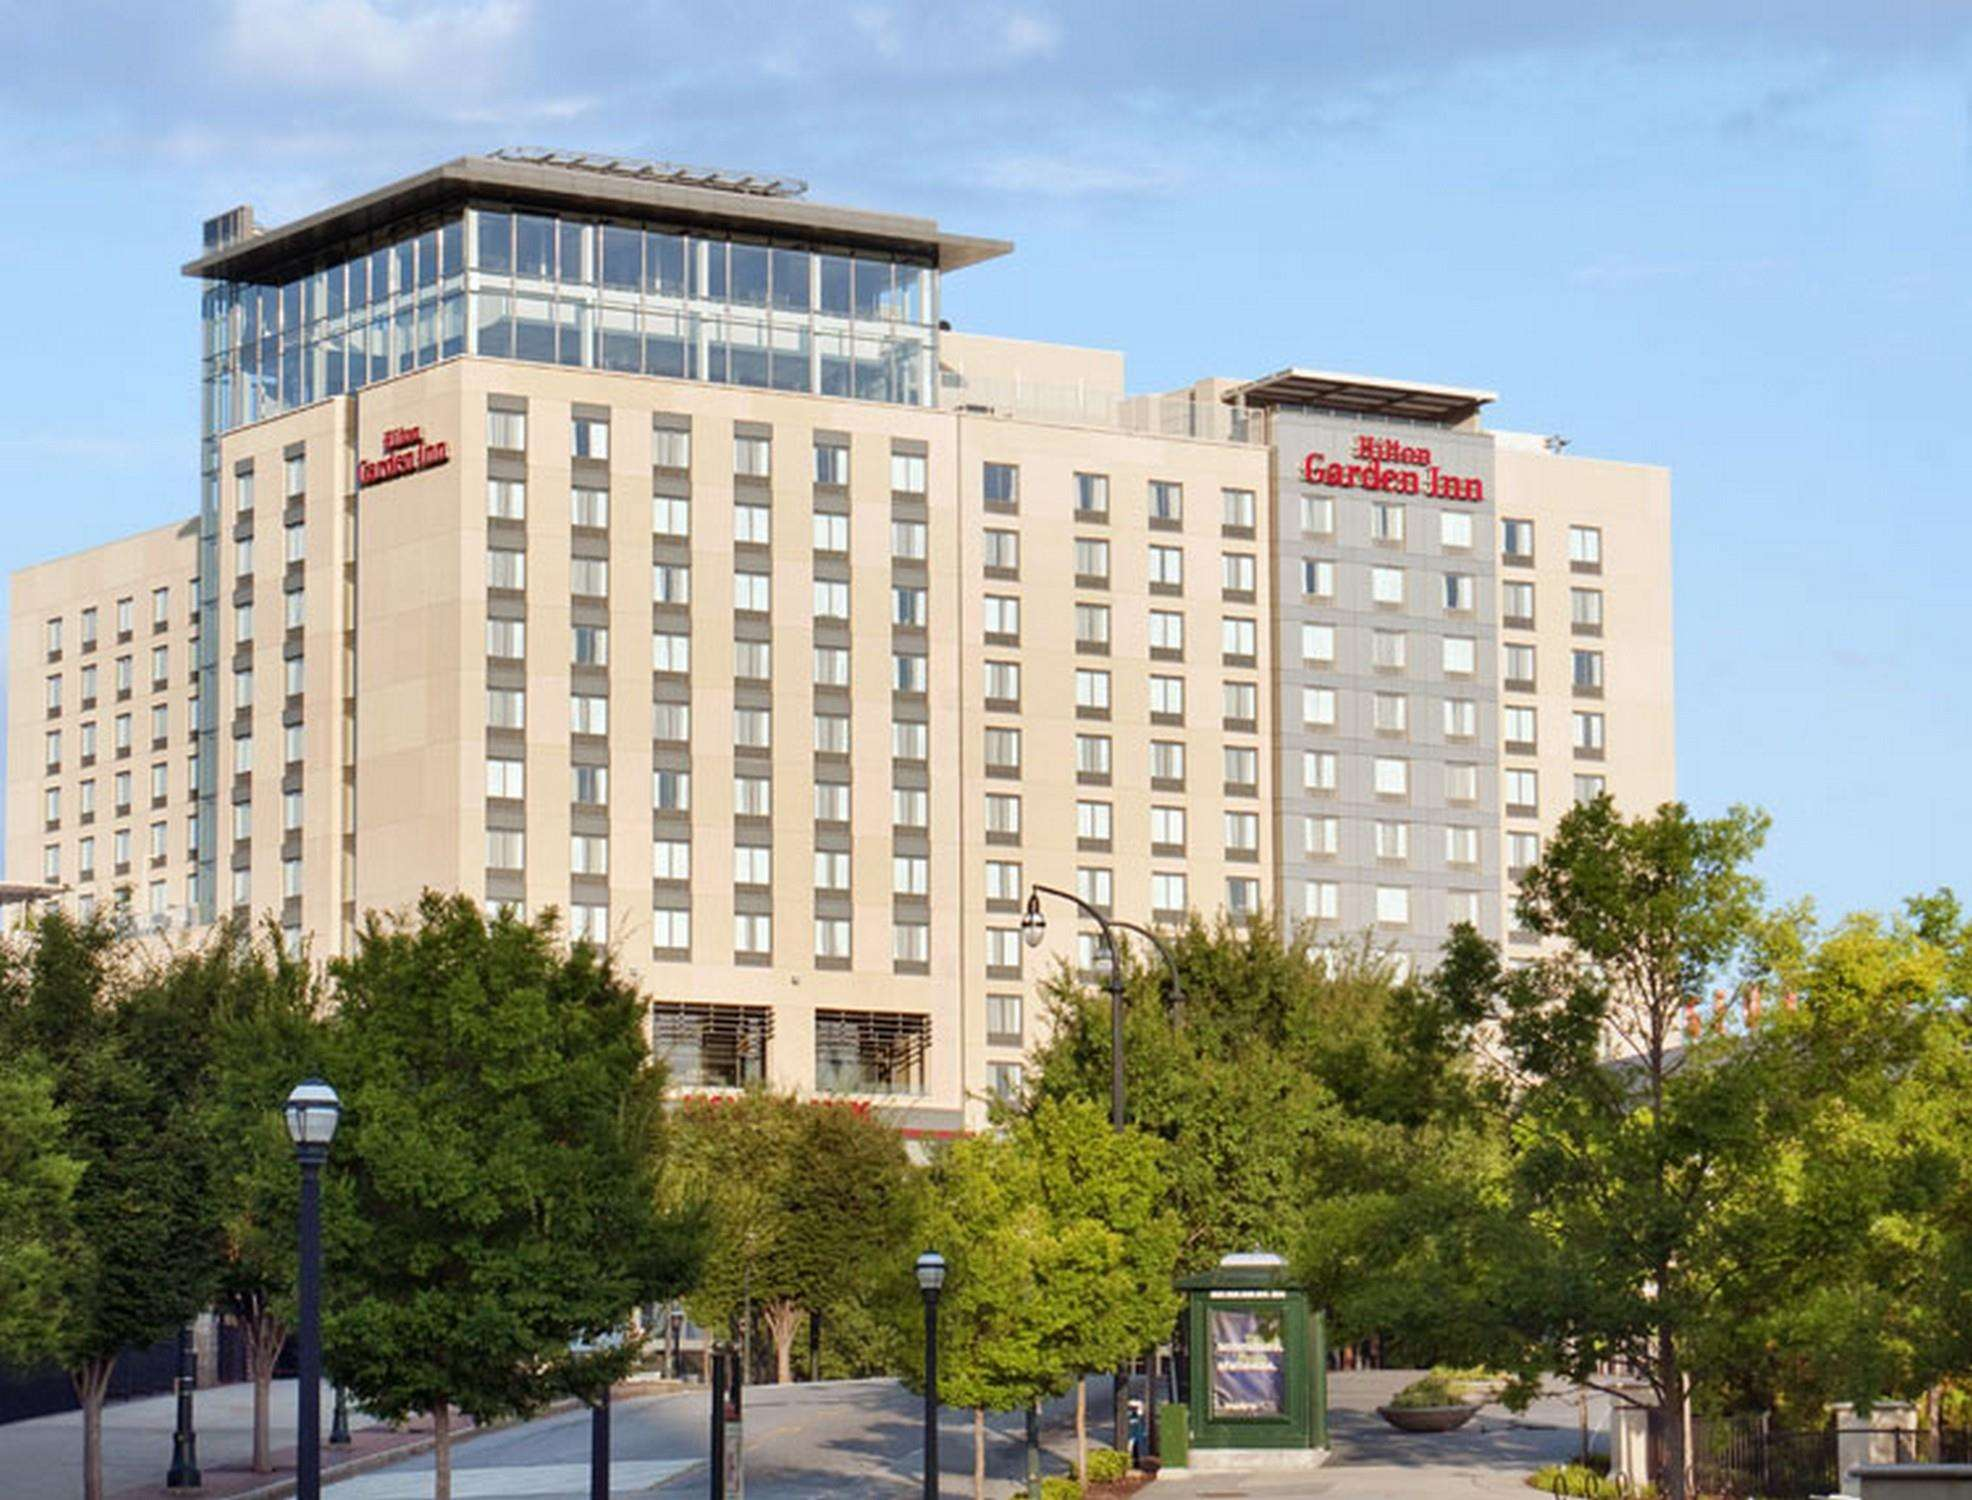 Hilton Garden Inn Atlanta Downtown image 5